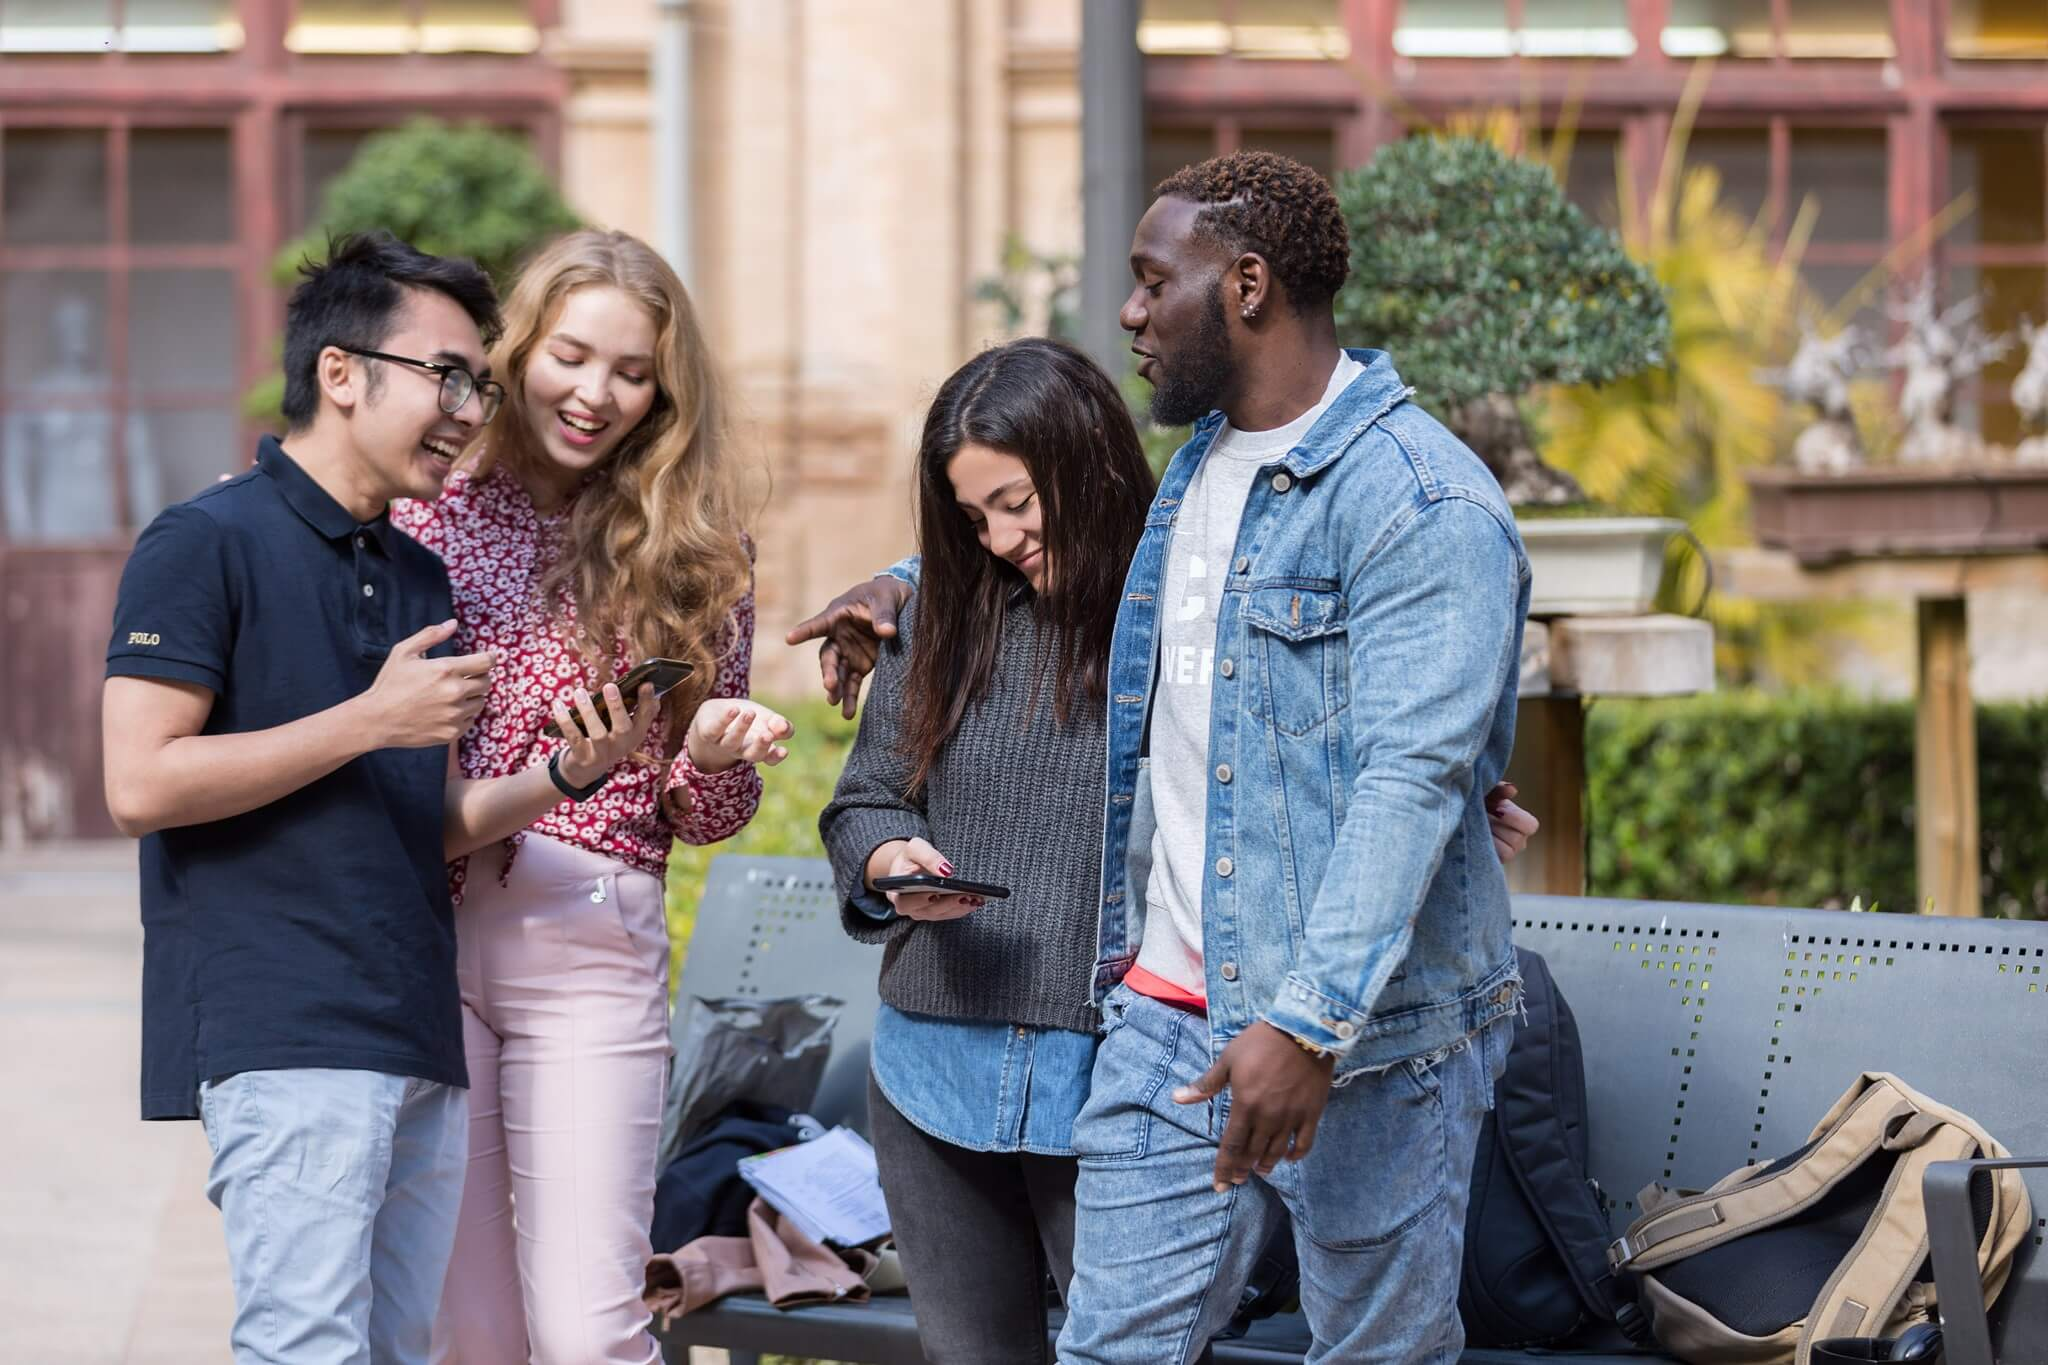 English-taught degree programmes driving the globalised economy of Europe